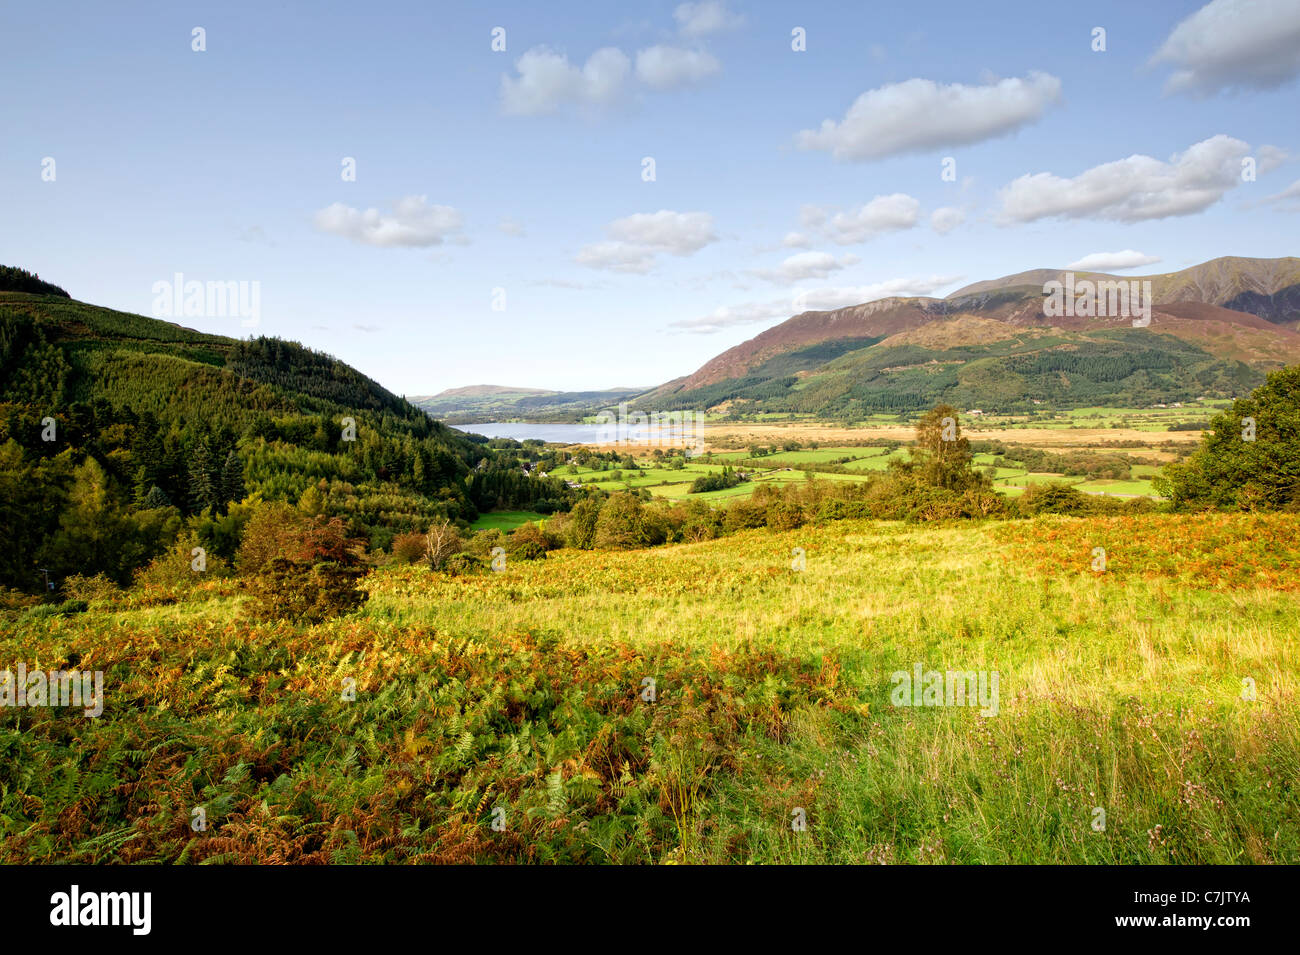 Whinlatter Pass in the Lake District, Cumbria, England with Derwentwater (Lake Derwent) in the distance - Stock Image